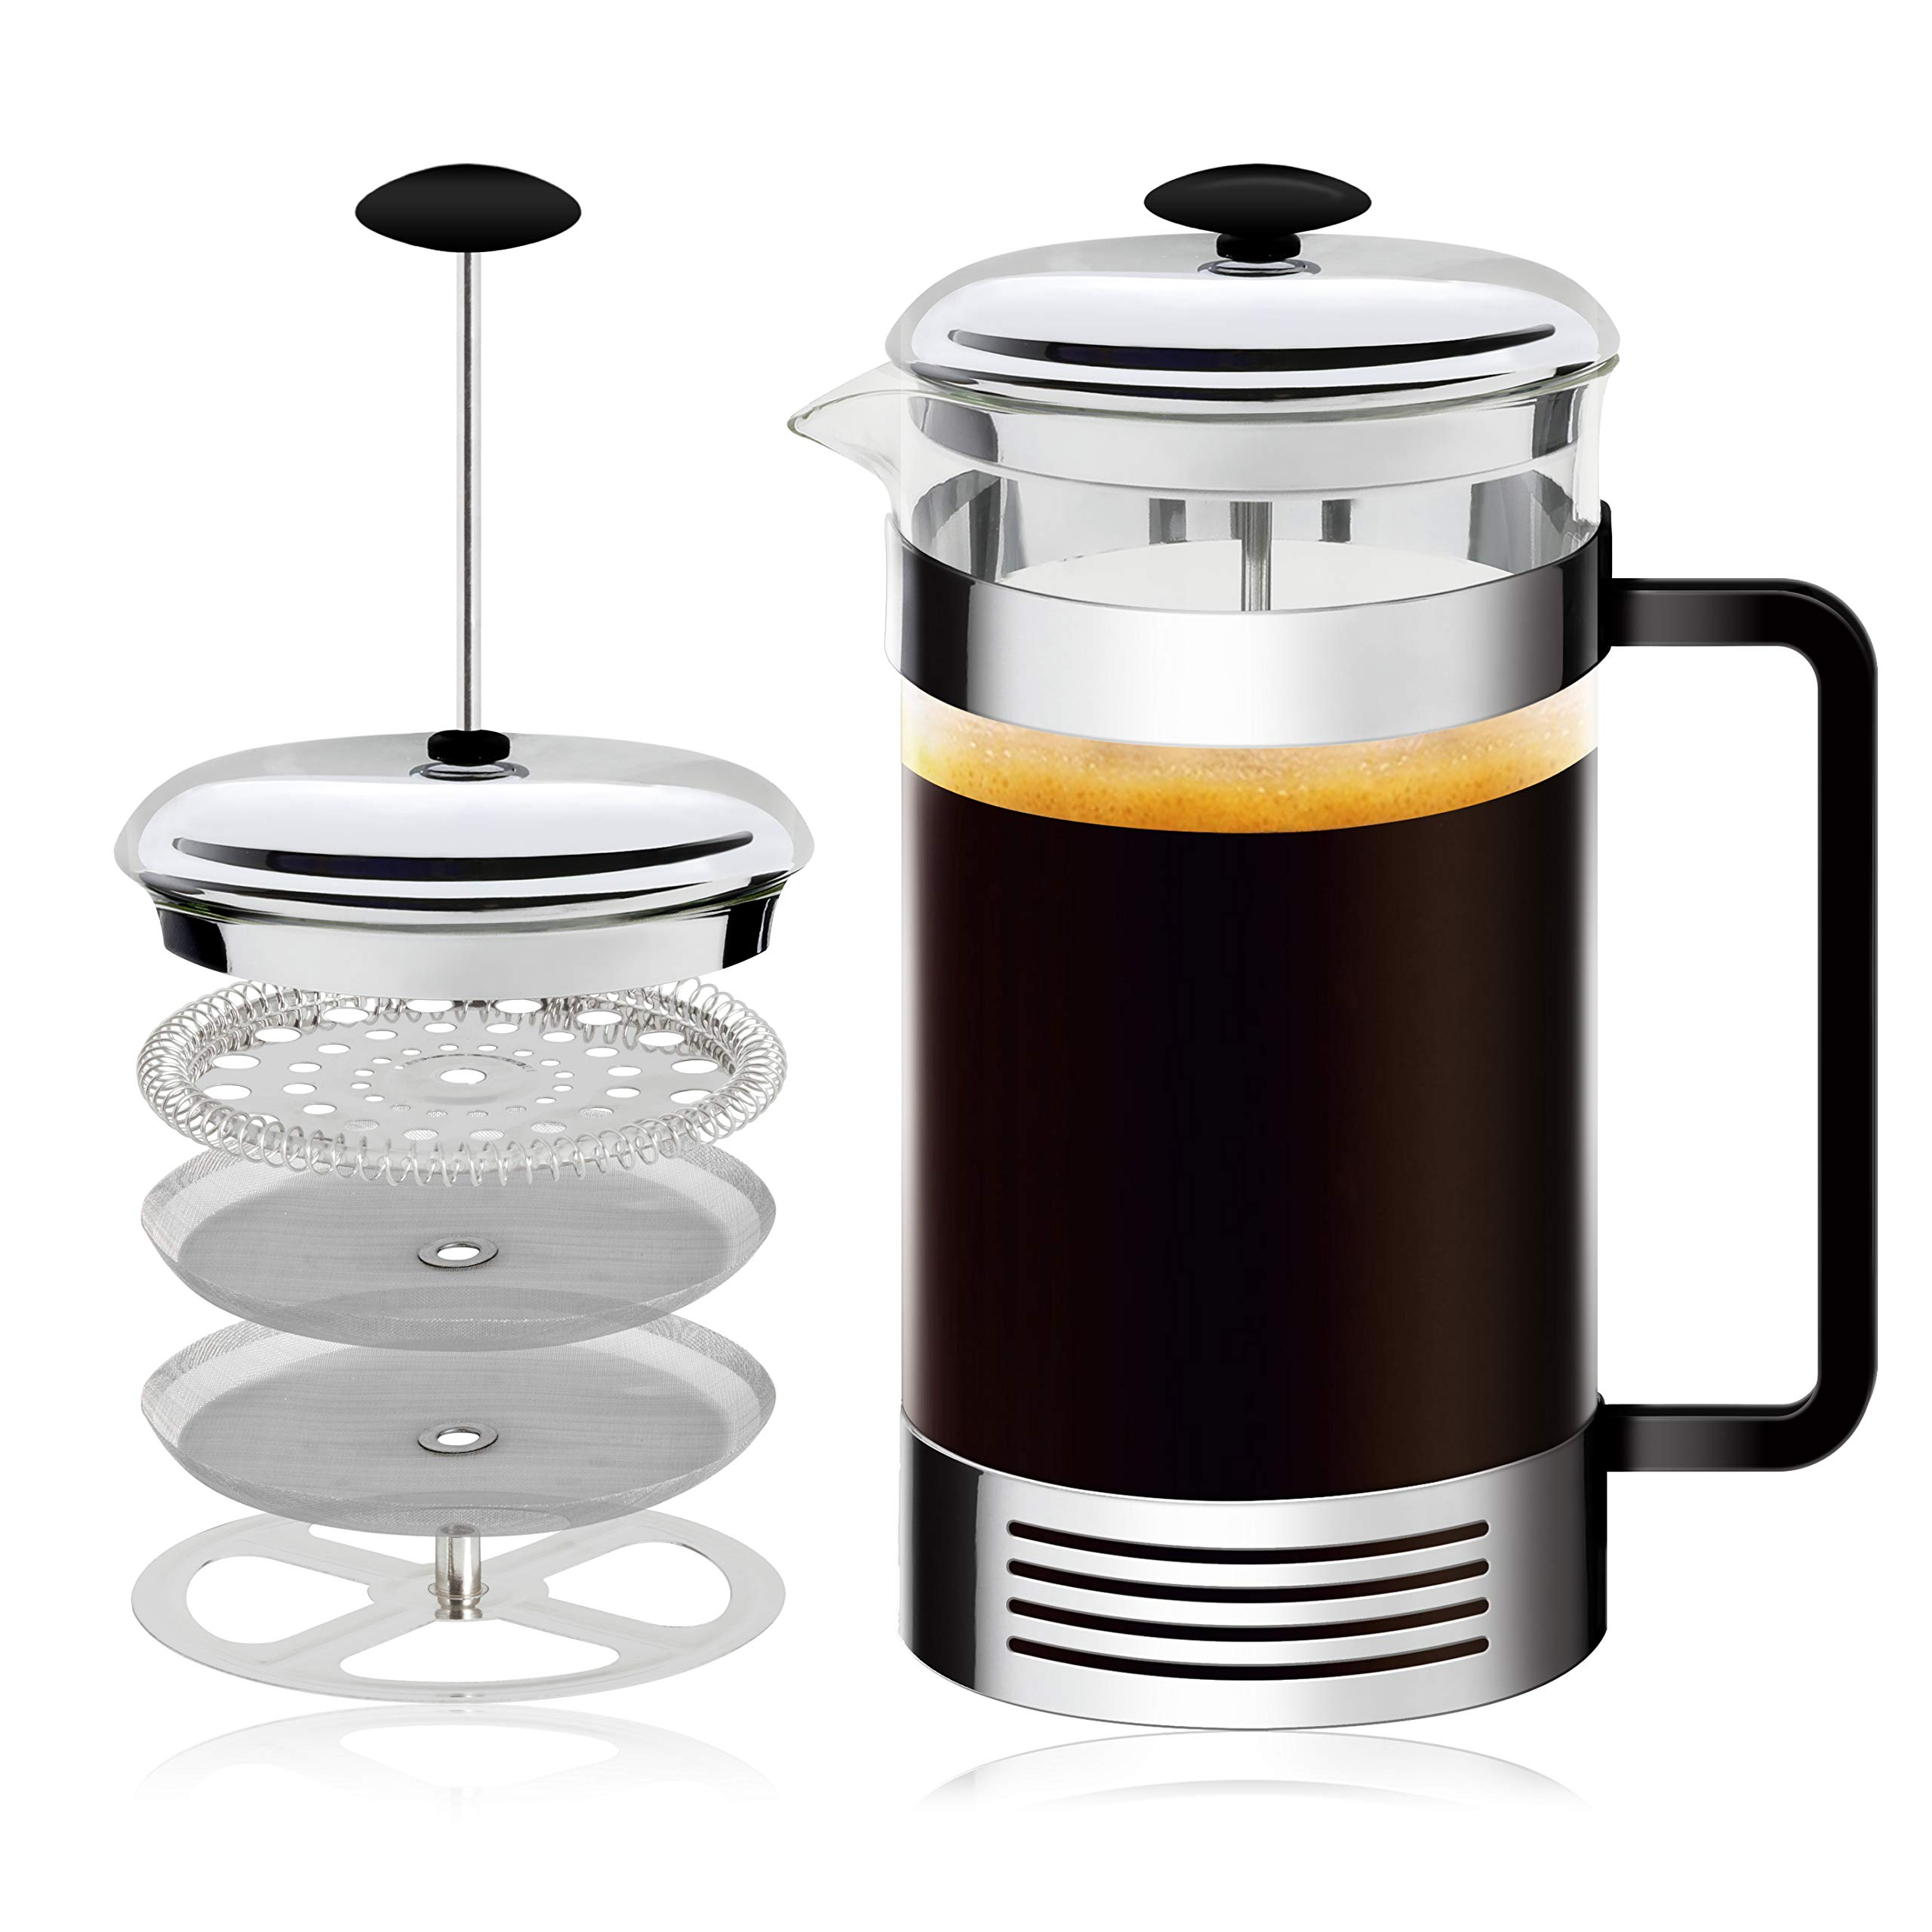 All-In-One French Press Coffee Maker | Dual Function Coffee Press And Tea Maker | High-Grade Stainless-Steel Single Cup or 32 OZ Multi-Cup | Make Gourmet Coffee At Home With This French Coffee Press by Mr Kitchen OIG Brands